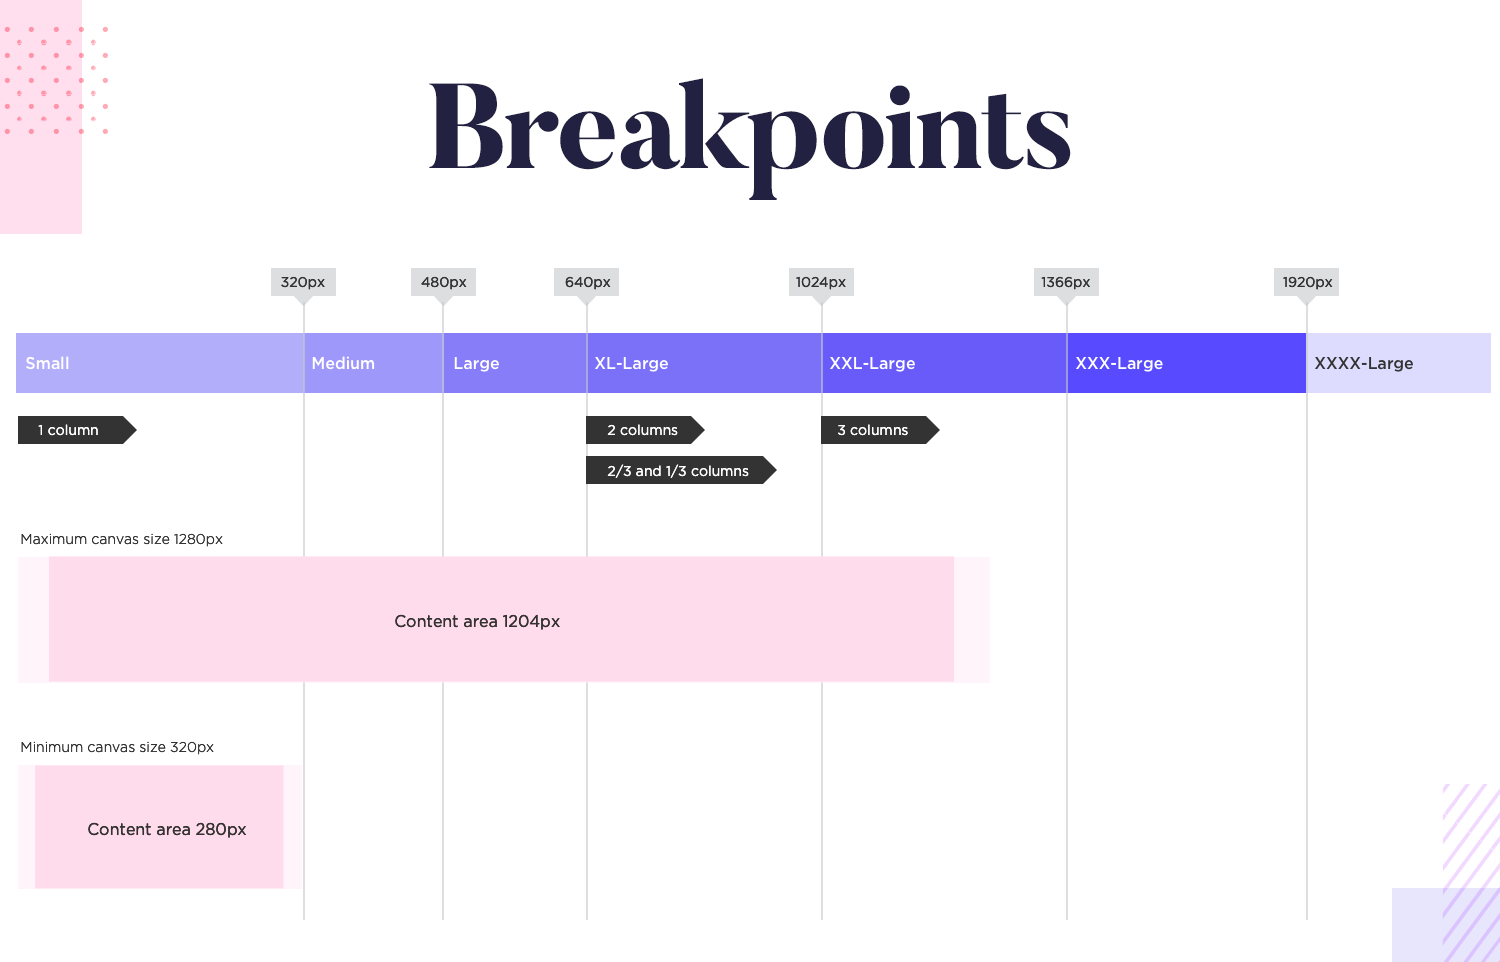 Responsive website examples - canvas according to breakpoints